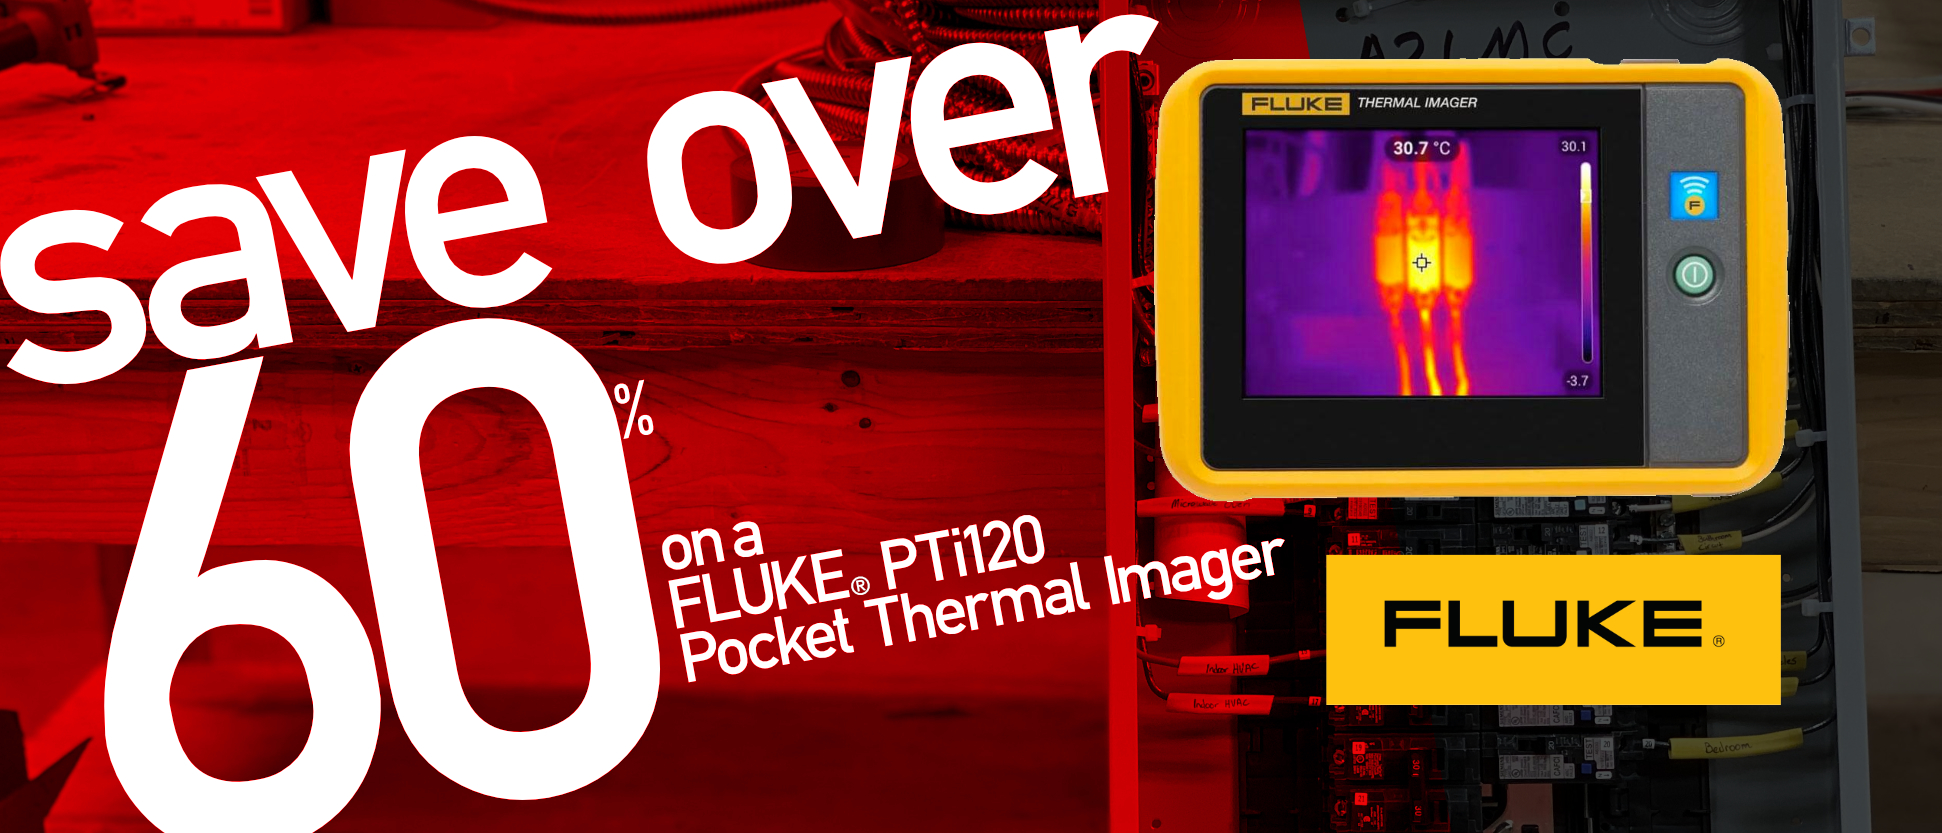 Save on a Fluke PTi120 Pocket Thermal Imager